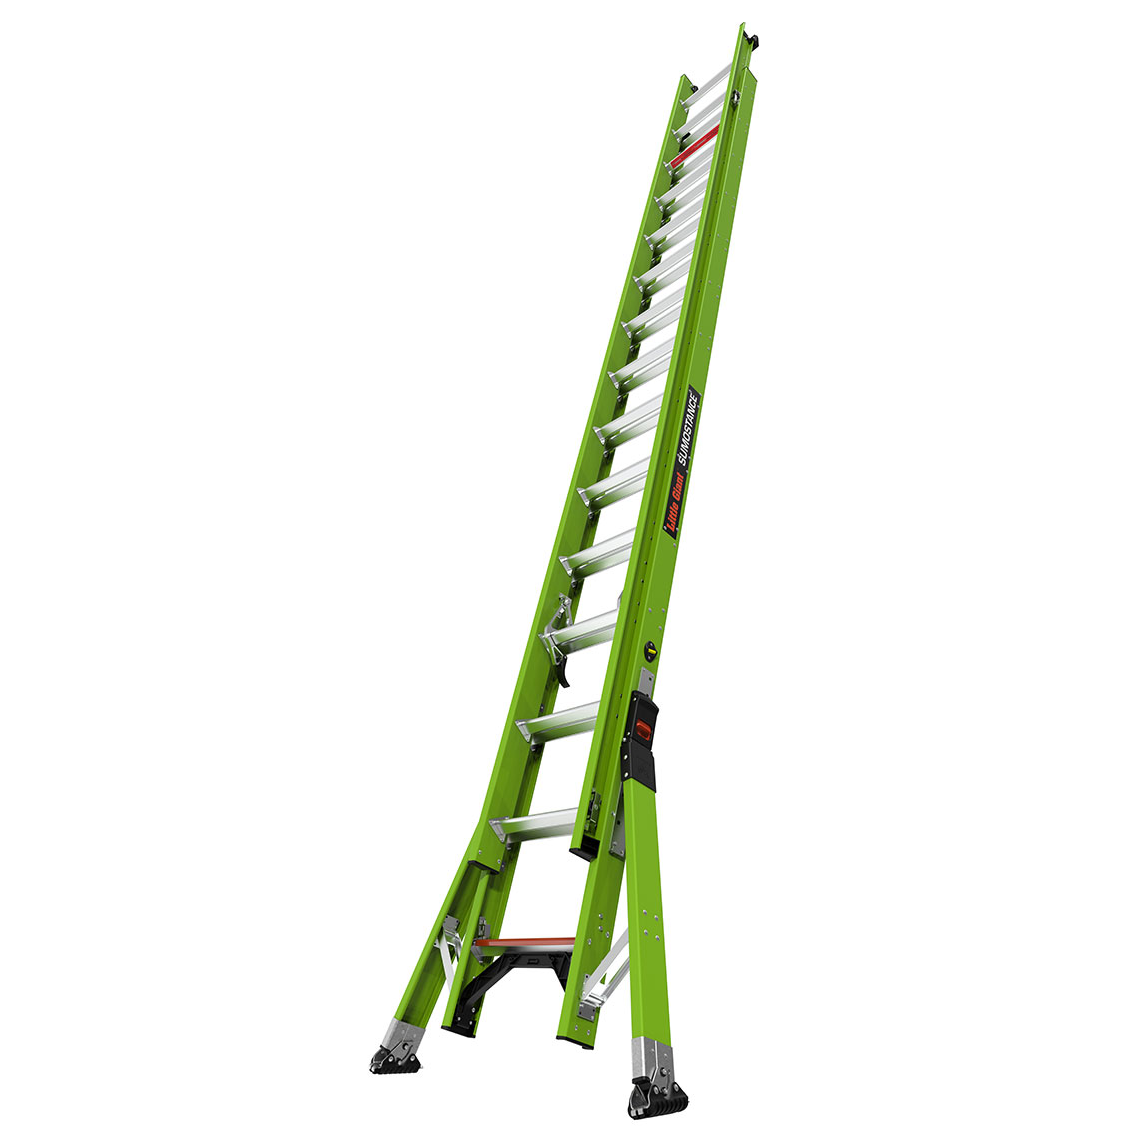 28 Ft. HyperLite SumoStance Fiberglass Extension Ladder - Type IAA